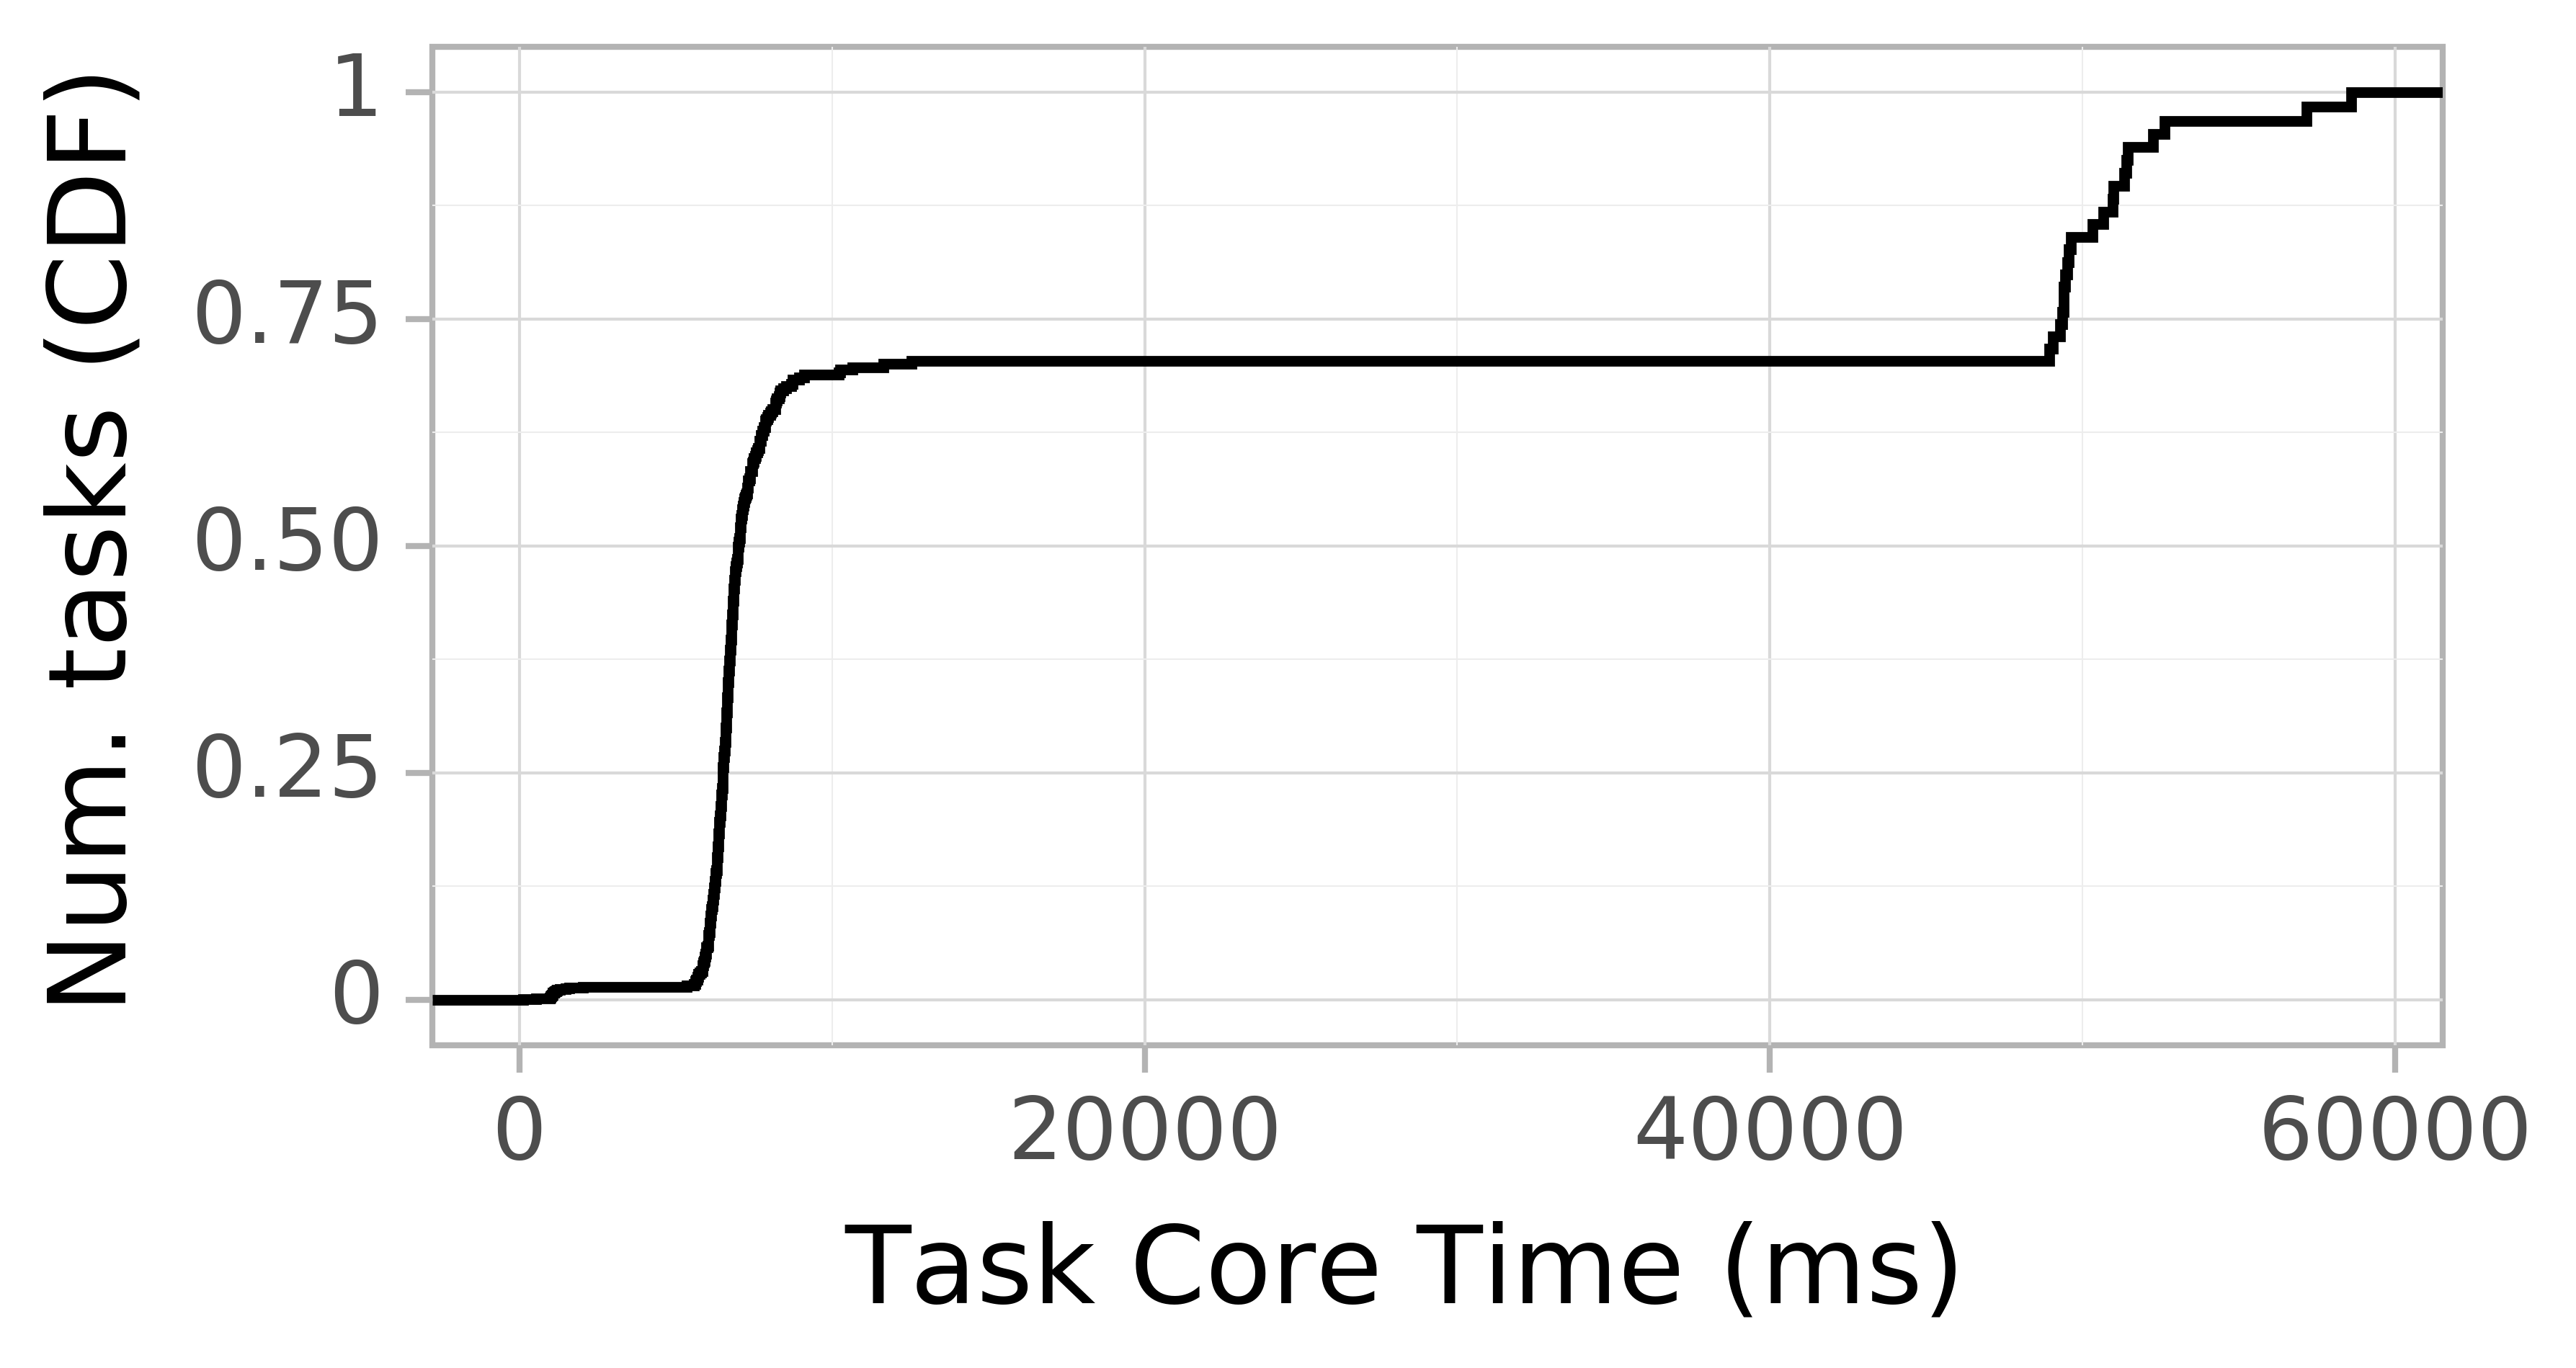 task resource time CDF graph for the askalon-new_ee60 trace.